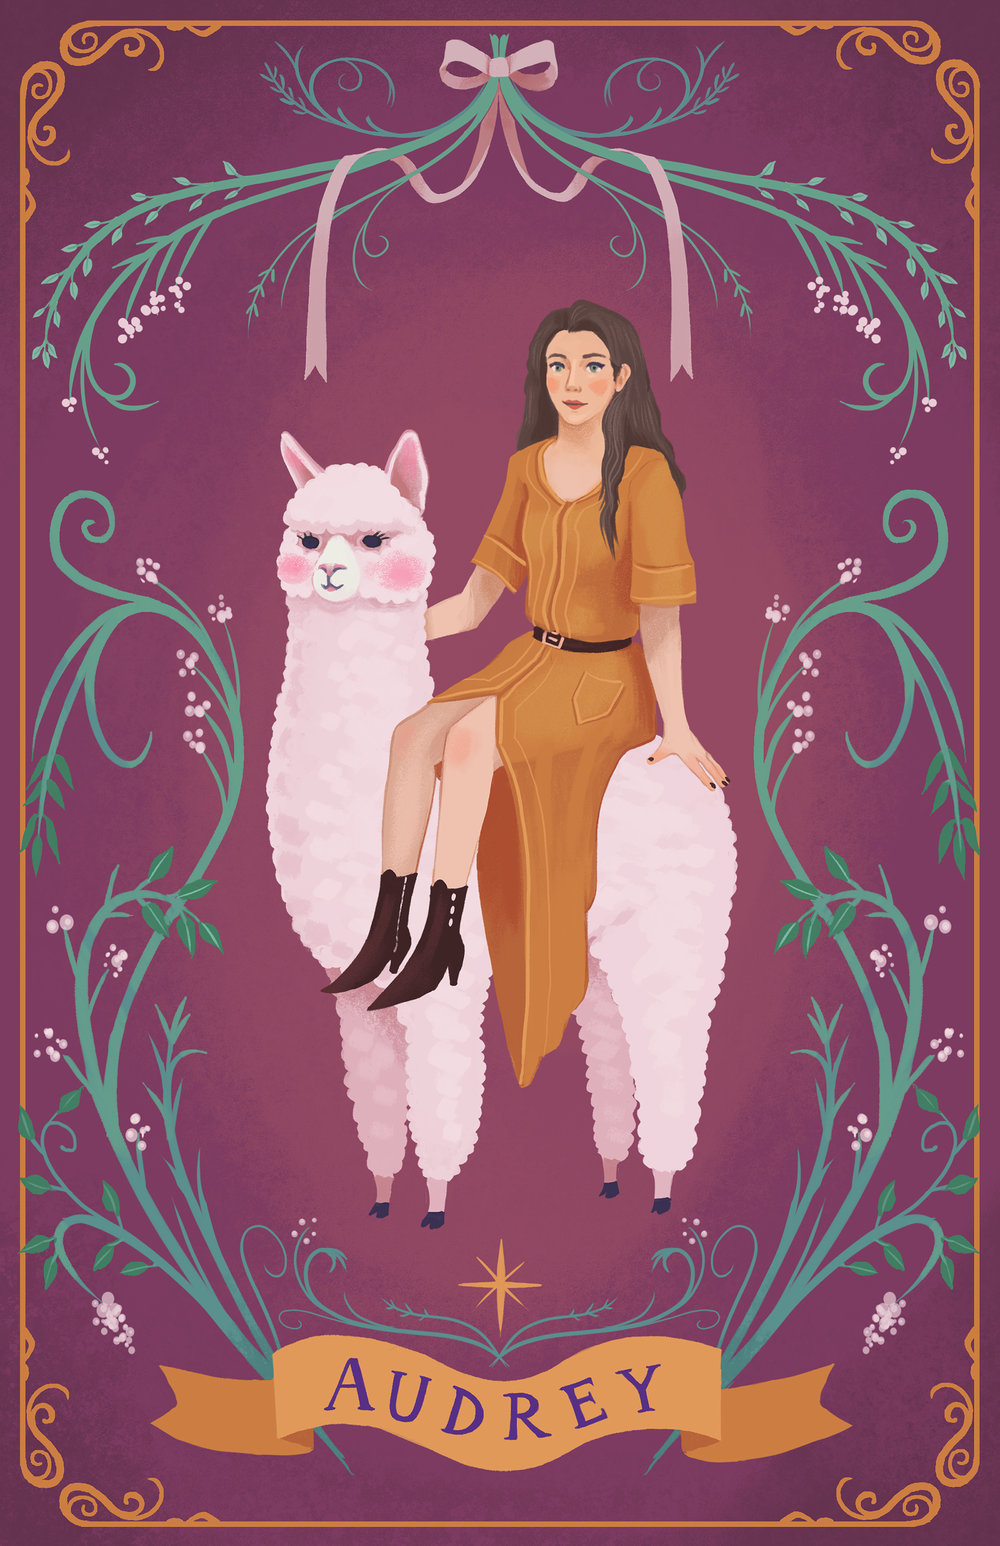 Audrey - A commissioned portrait of Audrey riding an alpaca.